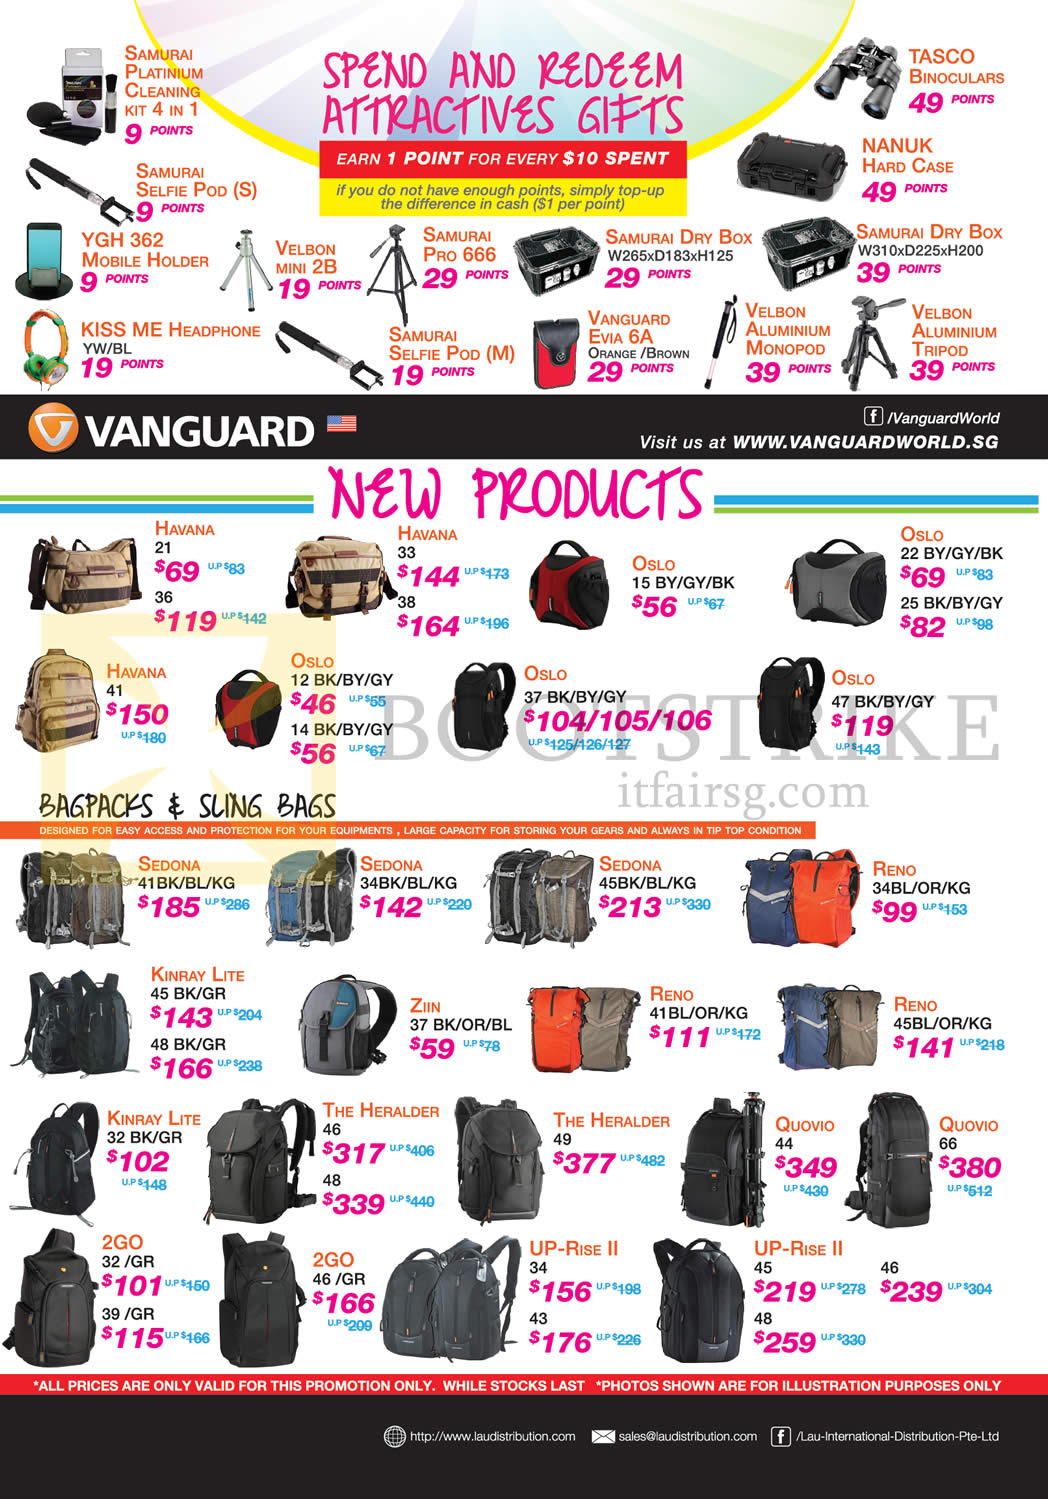 Lau Intl Vanguard Backpacks, Sling Bags, Accessories